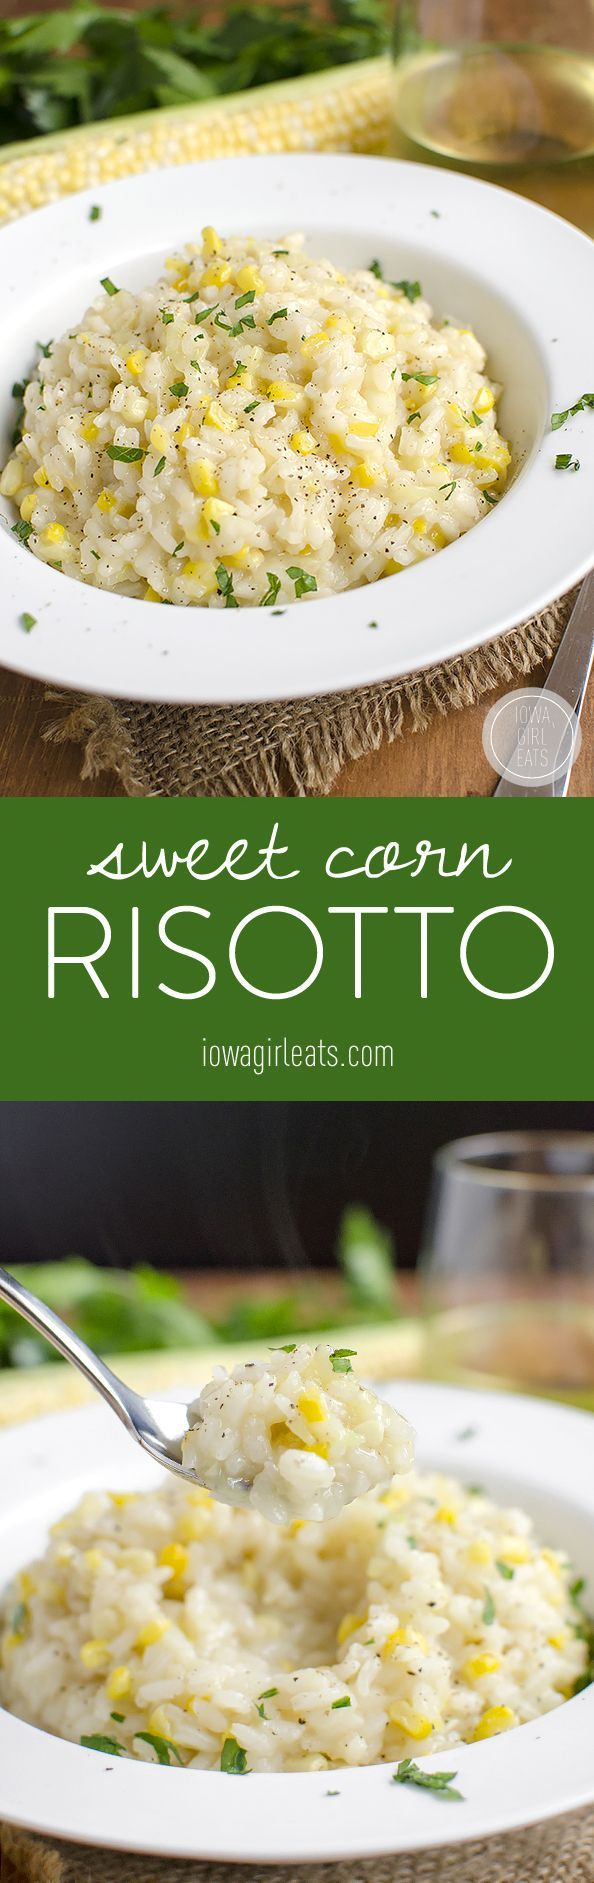 Sweet Corn Risotto - Creamy and decadent yet light and perfect for warm evenings.